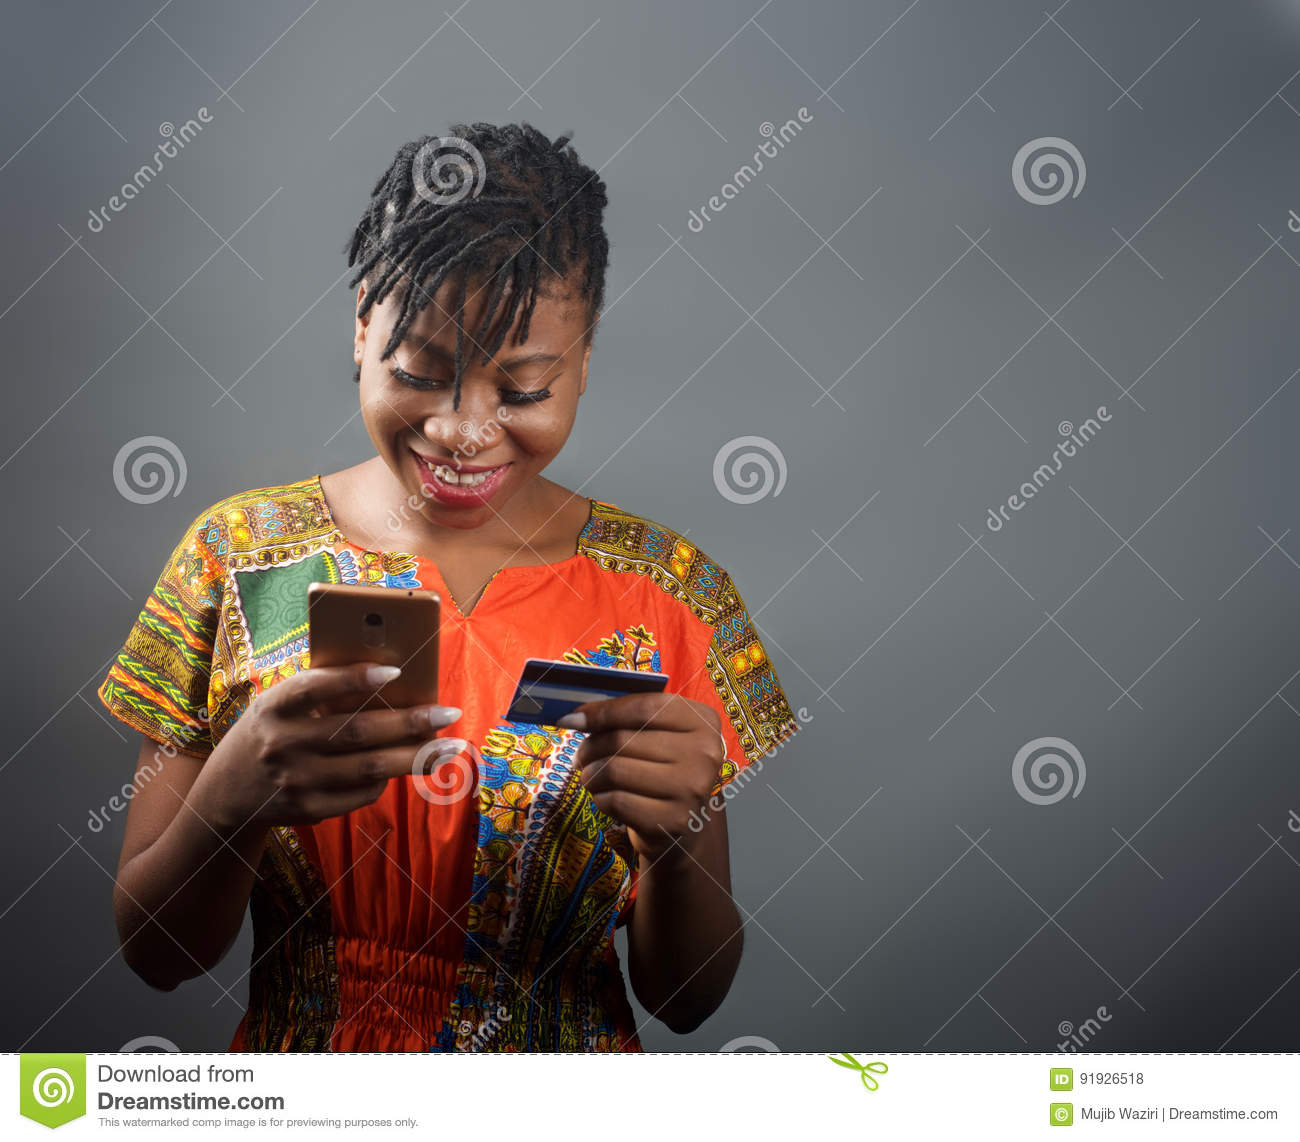 An african lady making an online payment with a debit card